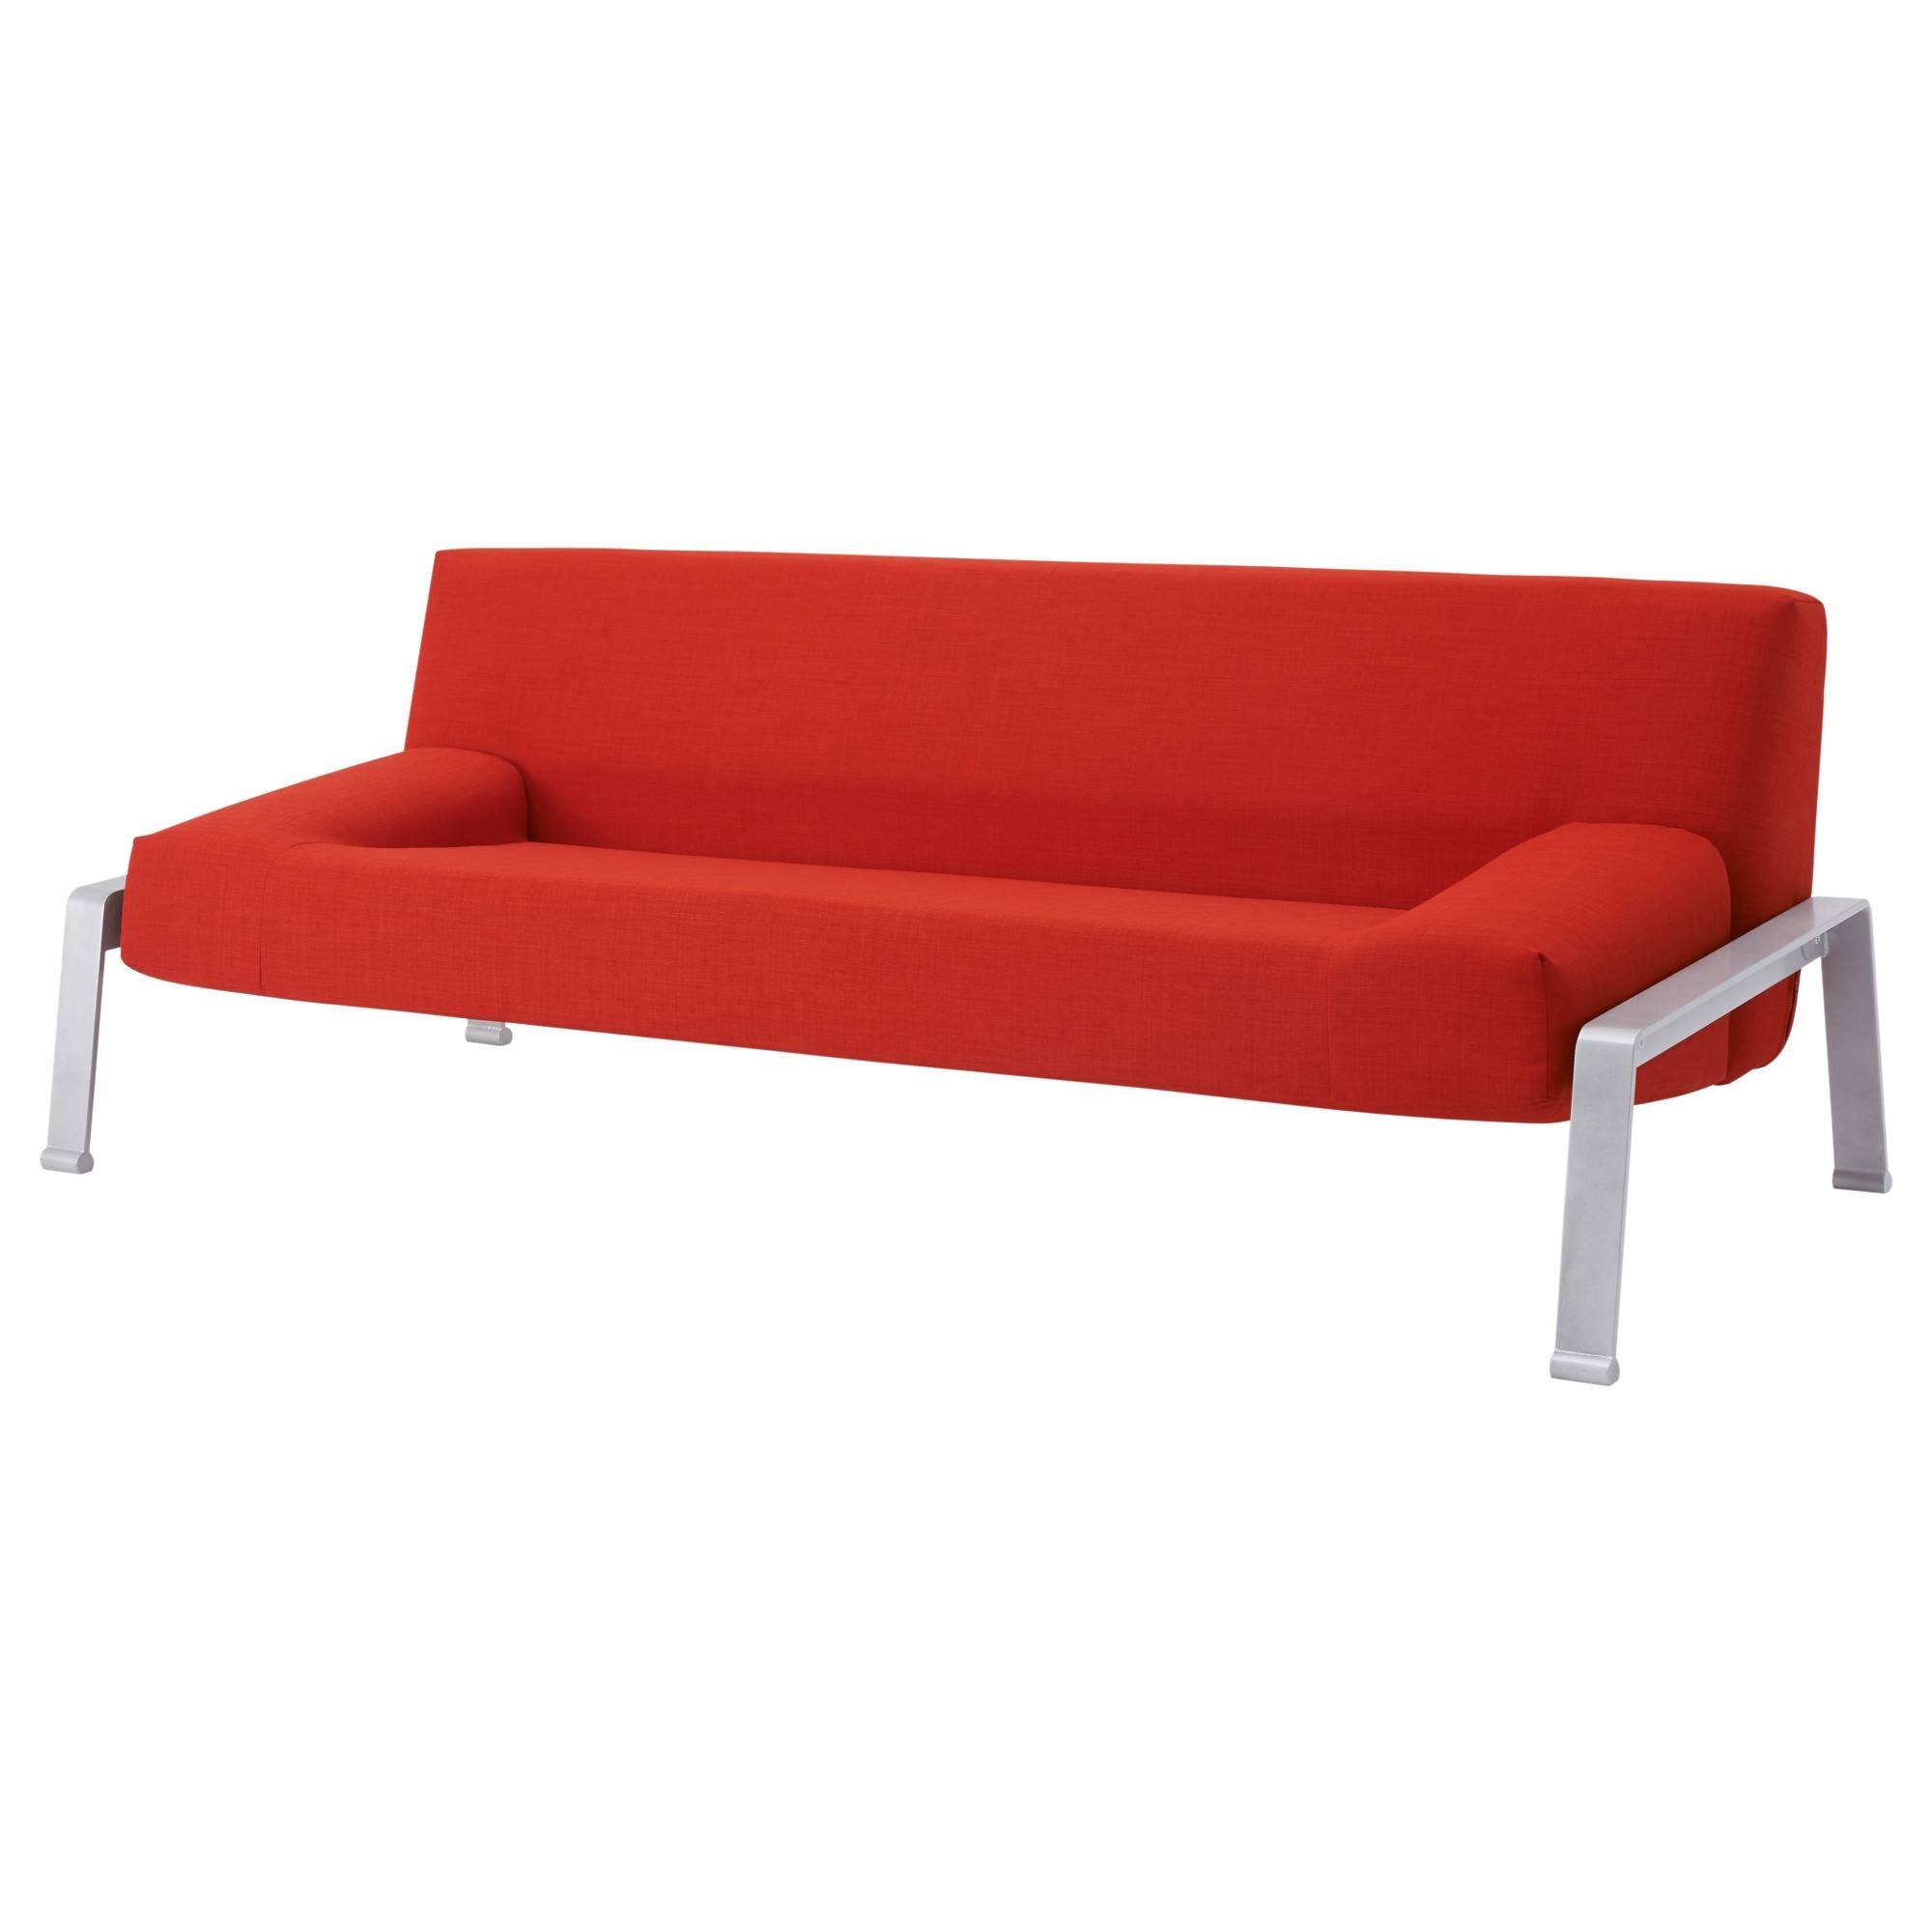 Ikea Sofa 2018 2018 Latest Red Sofa Beds Ikea